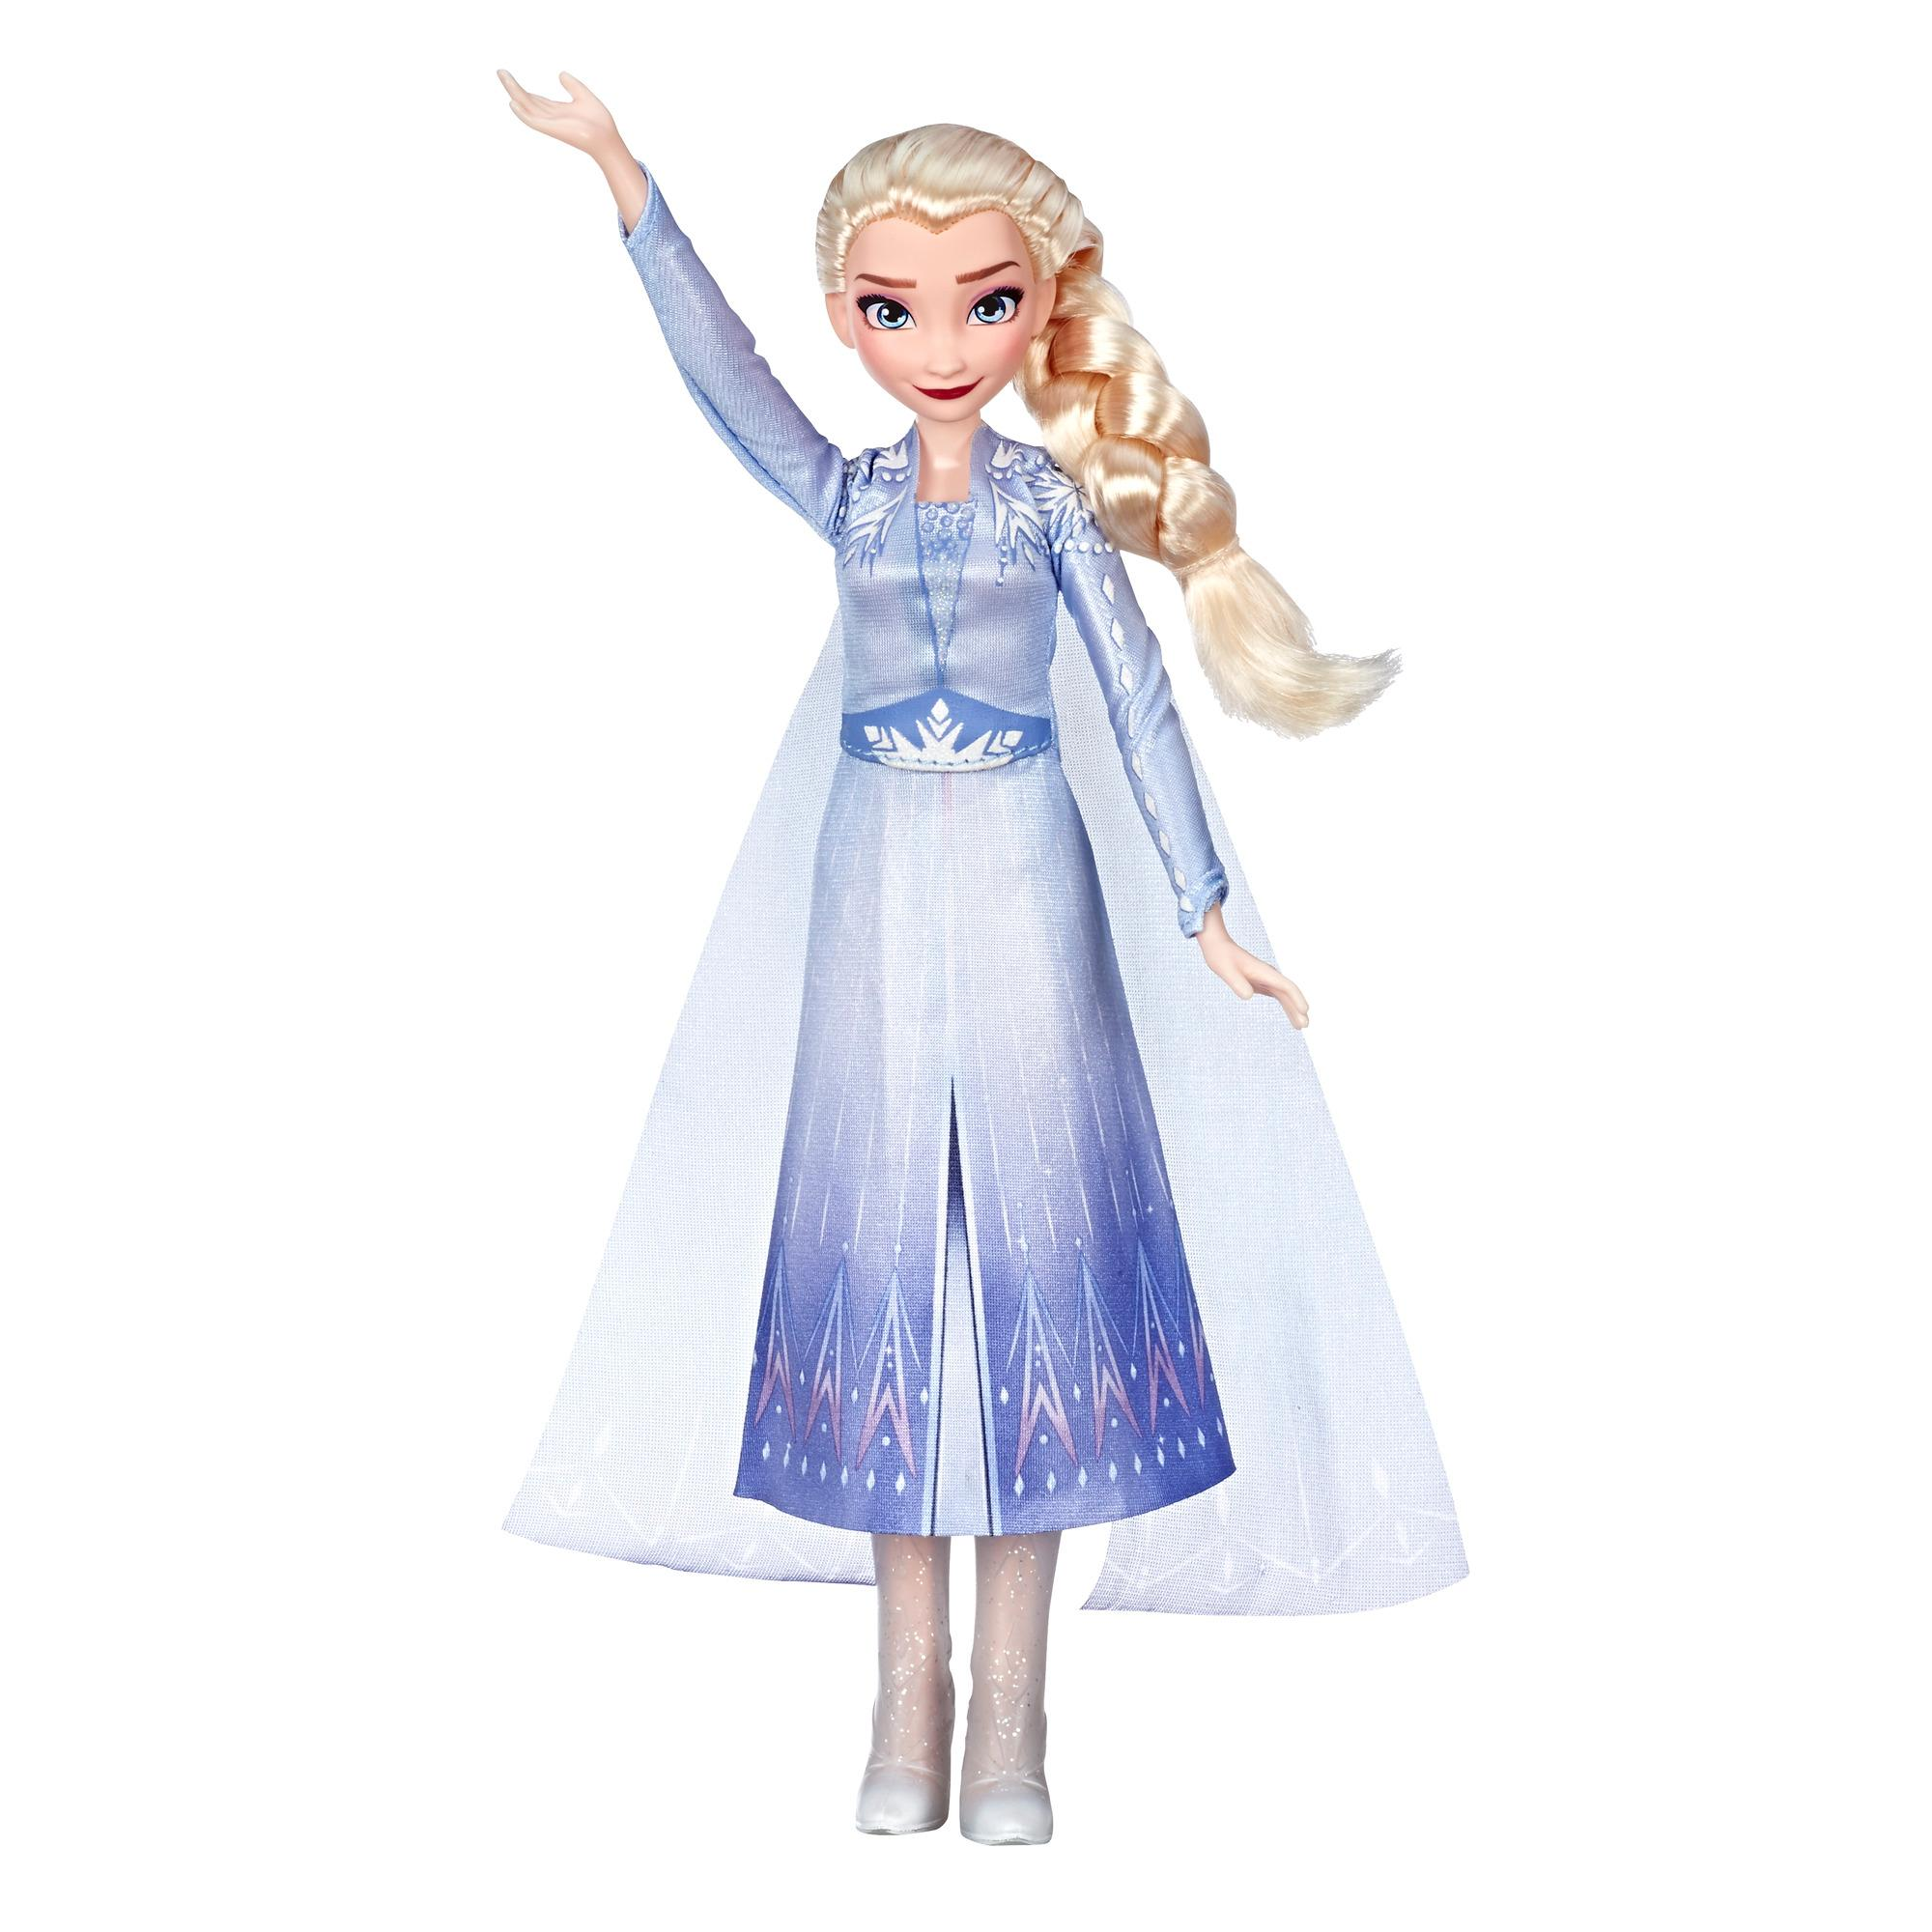 Disney Princess Frozen 2 Singing Fashion Doll - Elsa